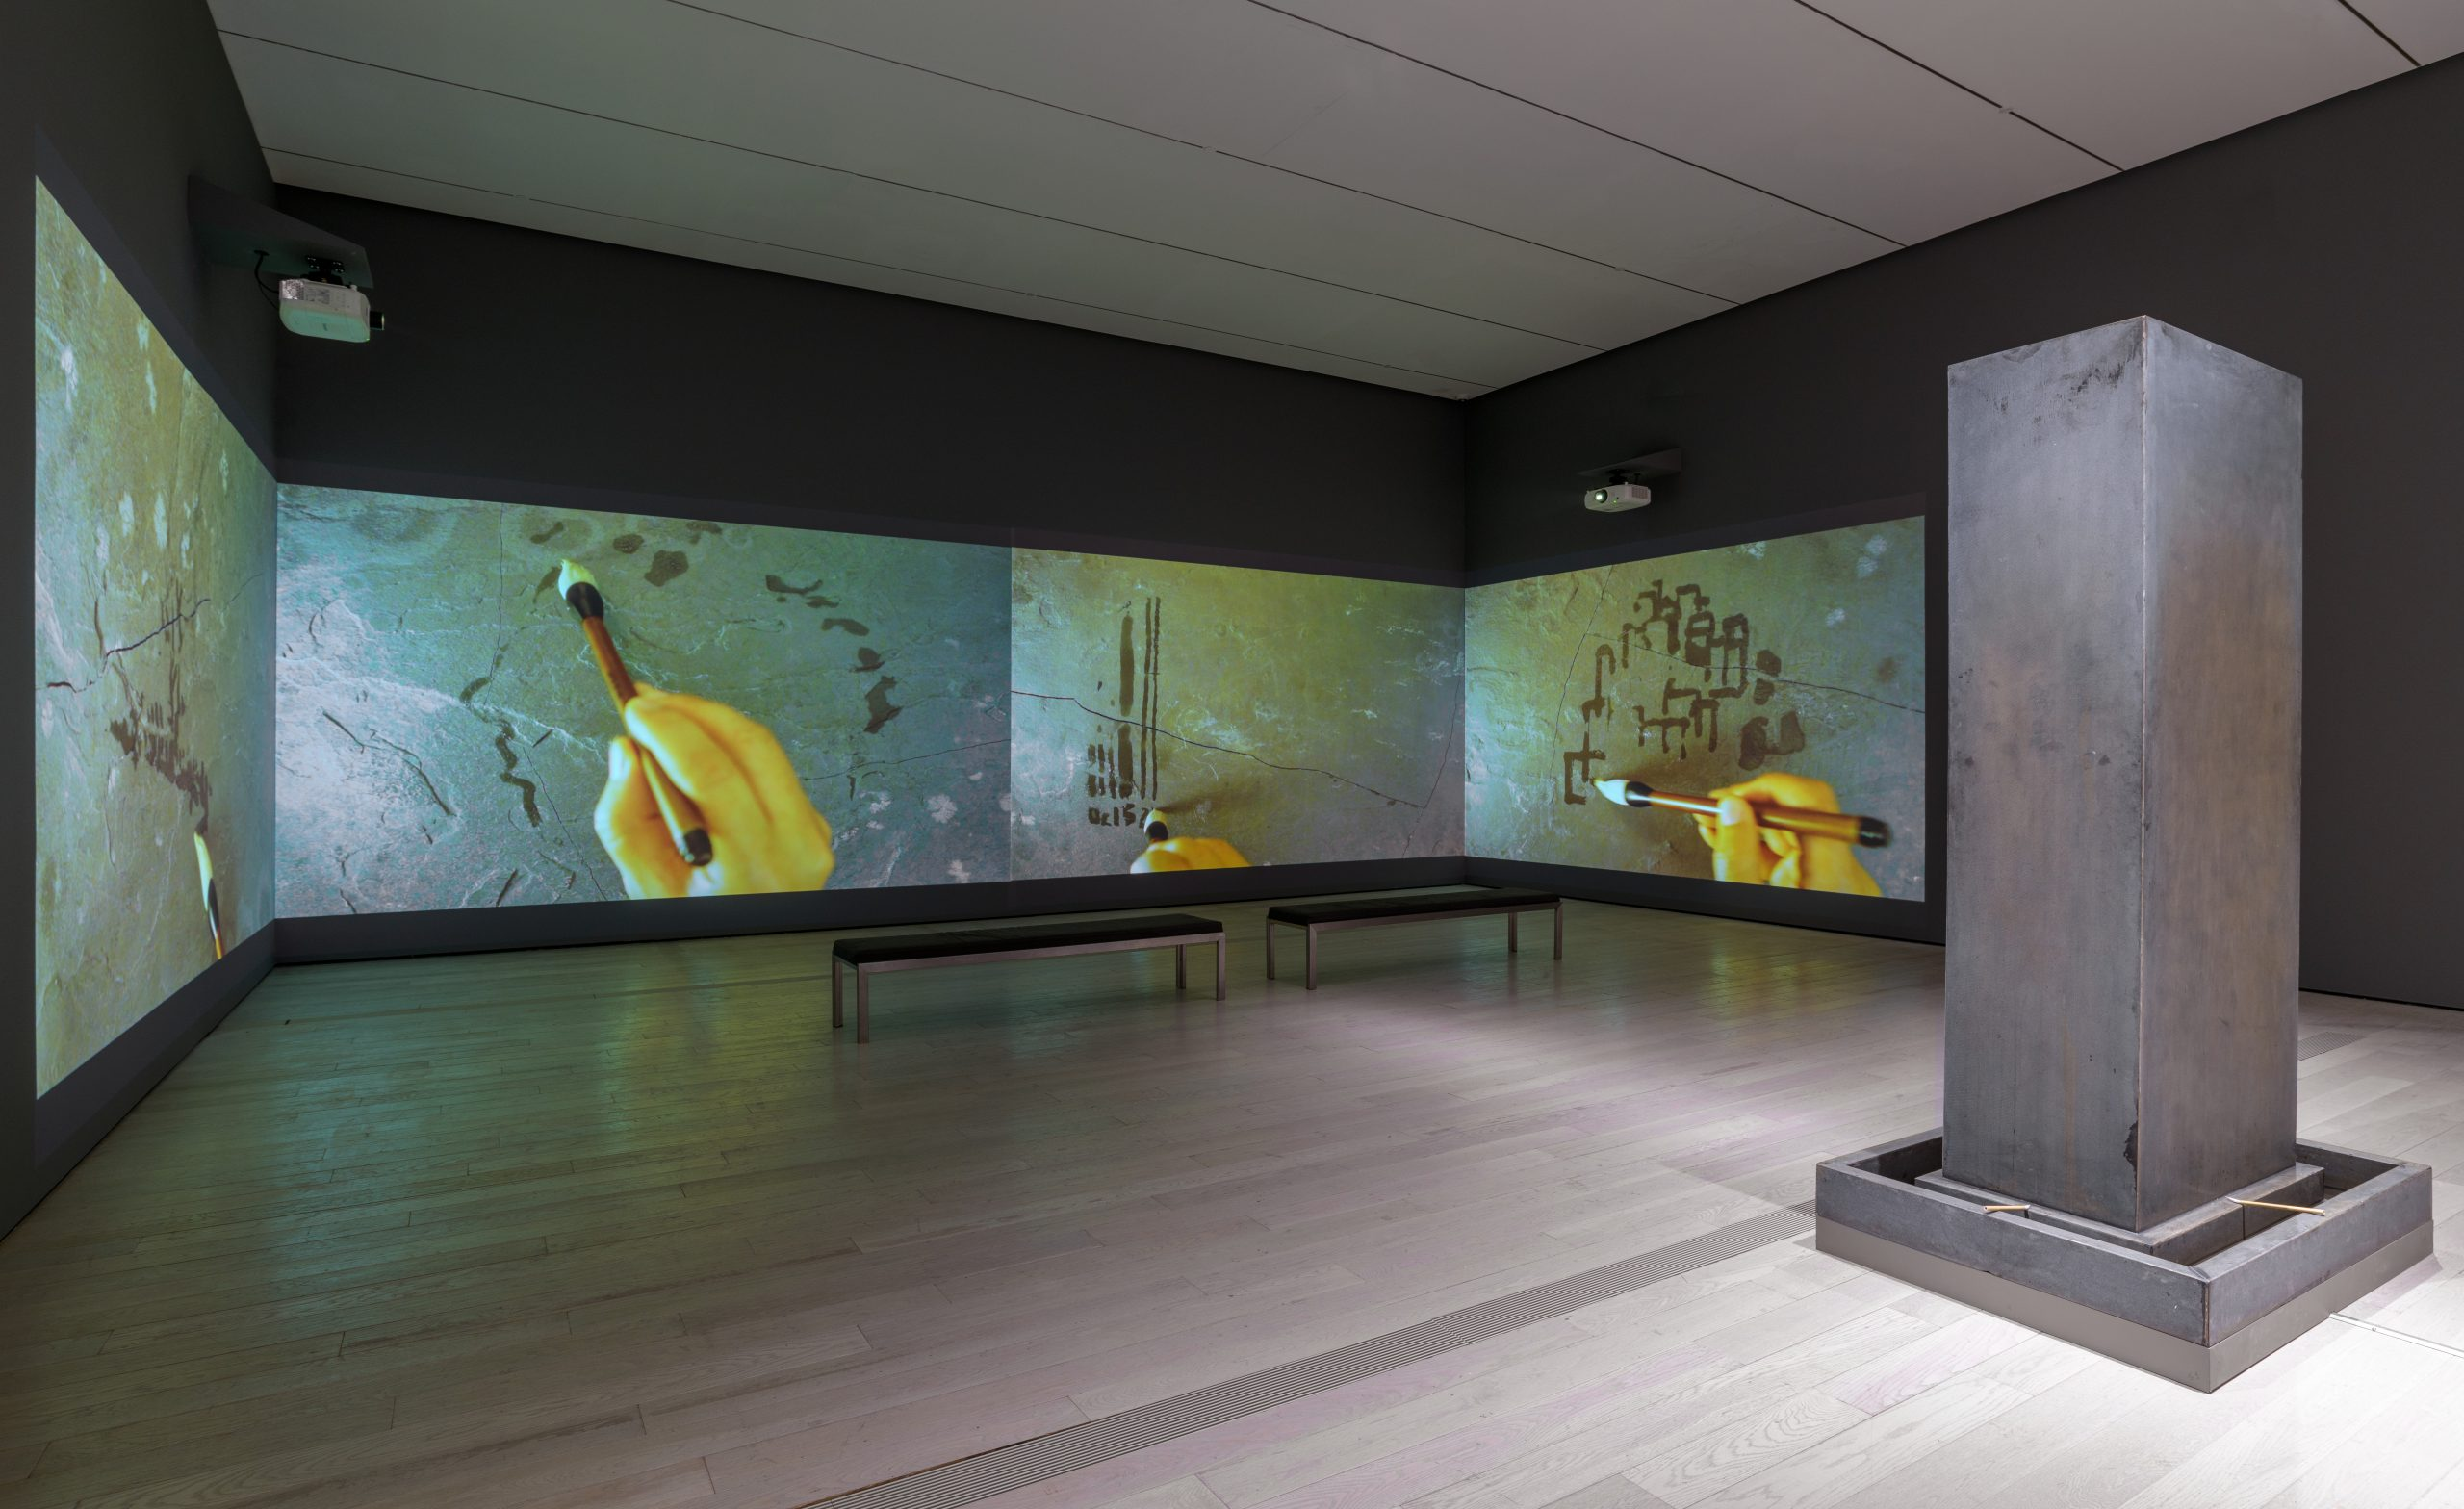 Song Dong, Water Records, 2010, Four-channel video projection; and Traceless Stele, 2016, Metal stele, water, brushes, and heating device. Collection of the artist, courtesy of Pace Gallery. Installation view at the Los Angeles County Museum of Art. Photo: © Museum Associates/LACMA.